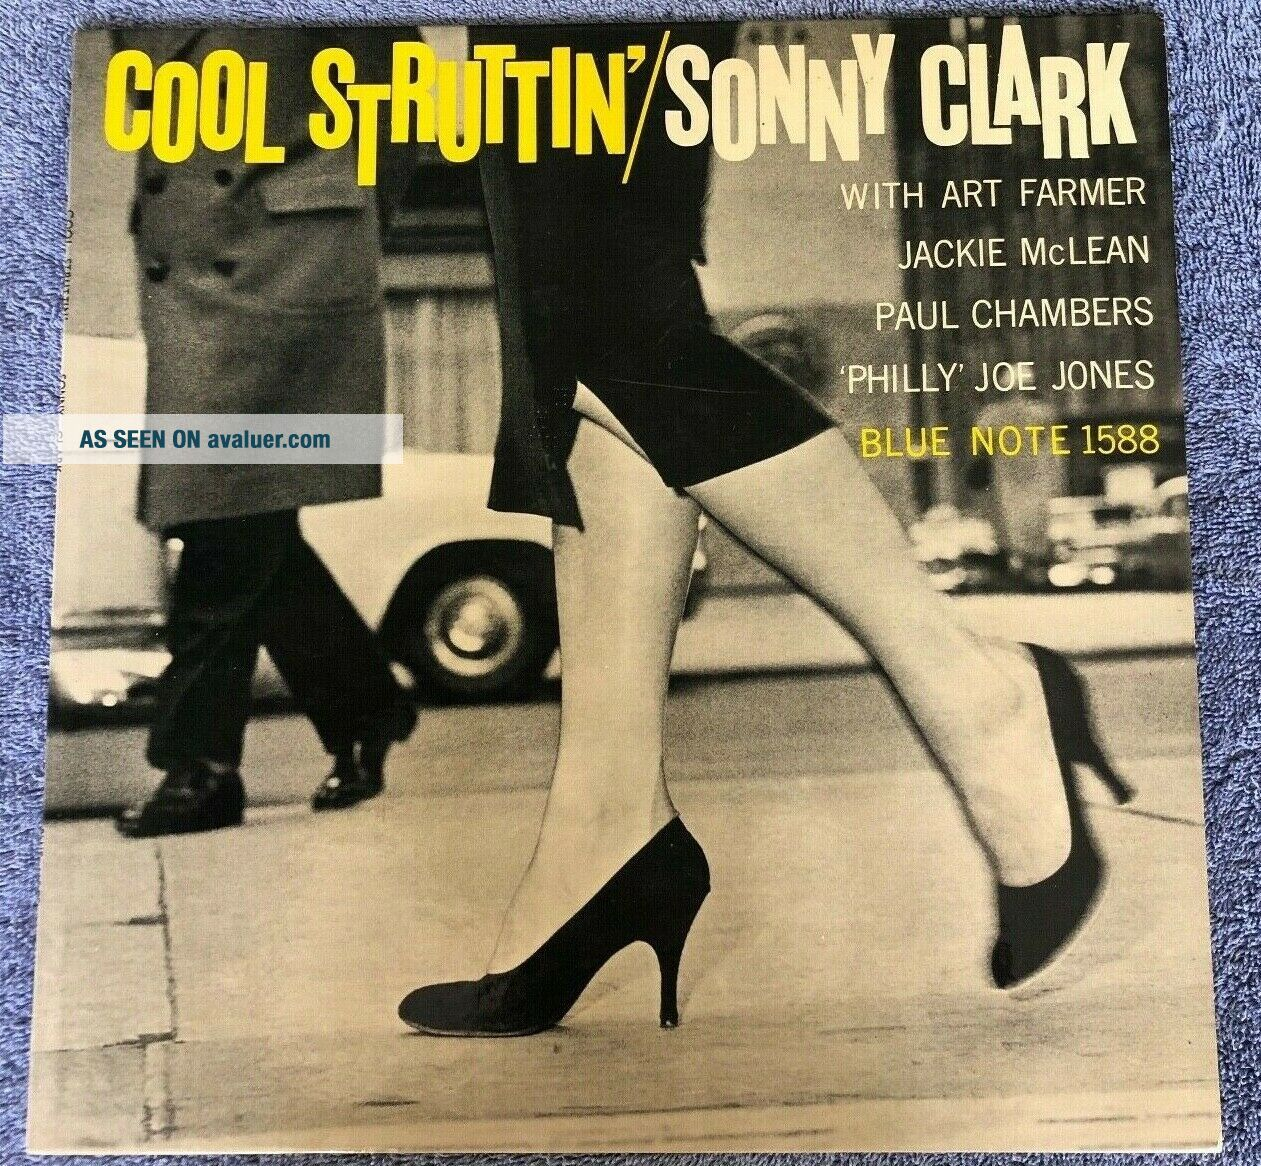 Cool Struttin ' with Sonny Clark / Mono / Ear and RVG / NM - plus archival cond.